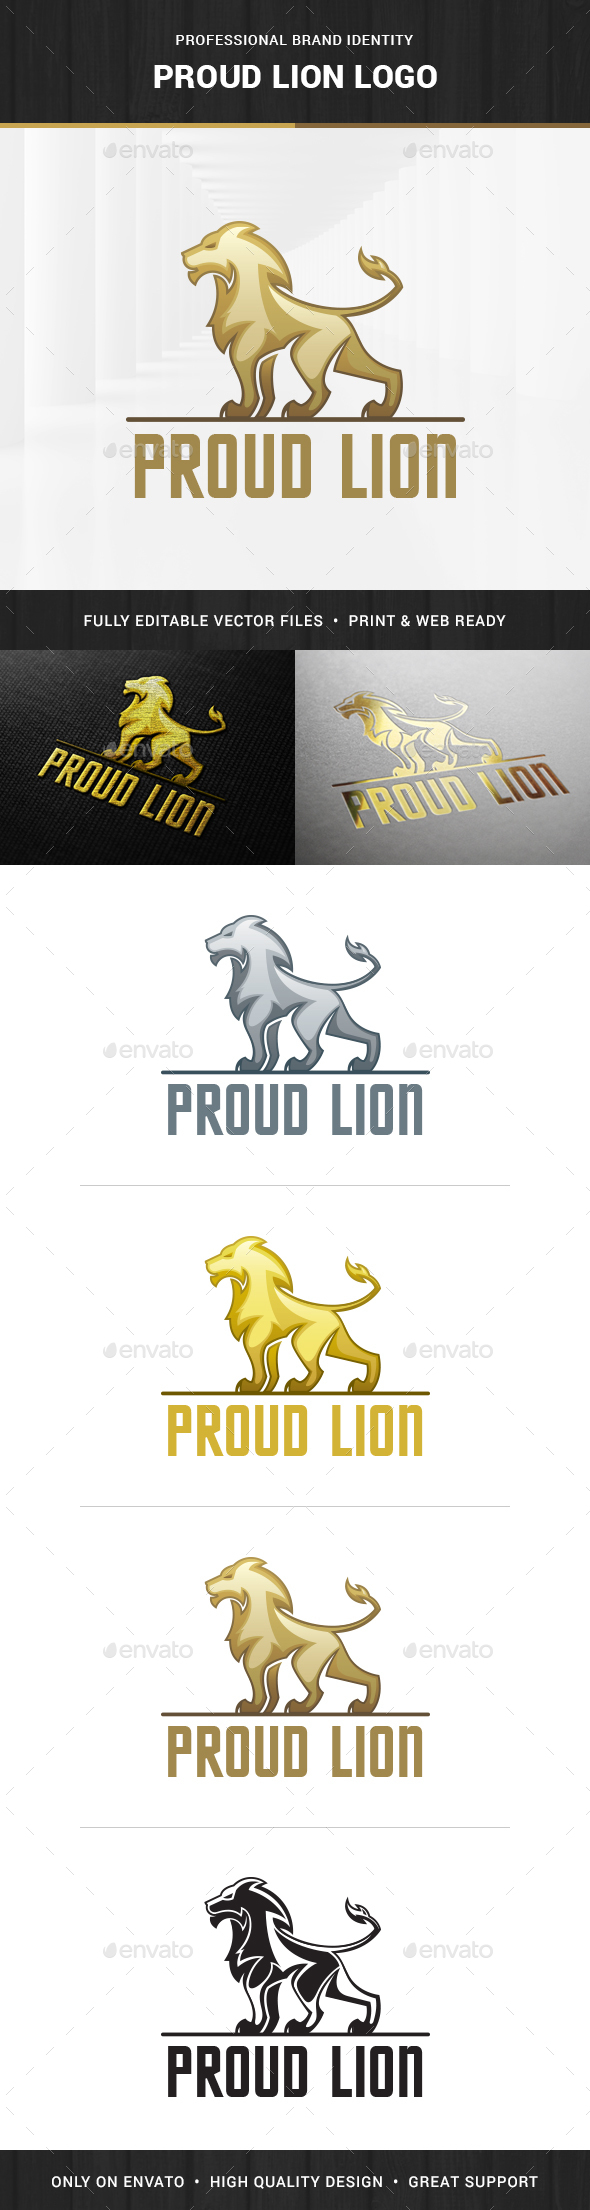 Proud Lion Logo Template - Animals Logo Templates